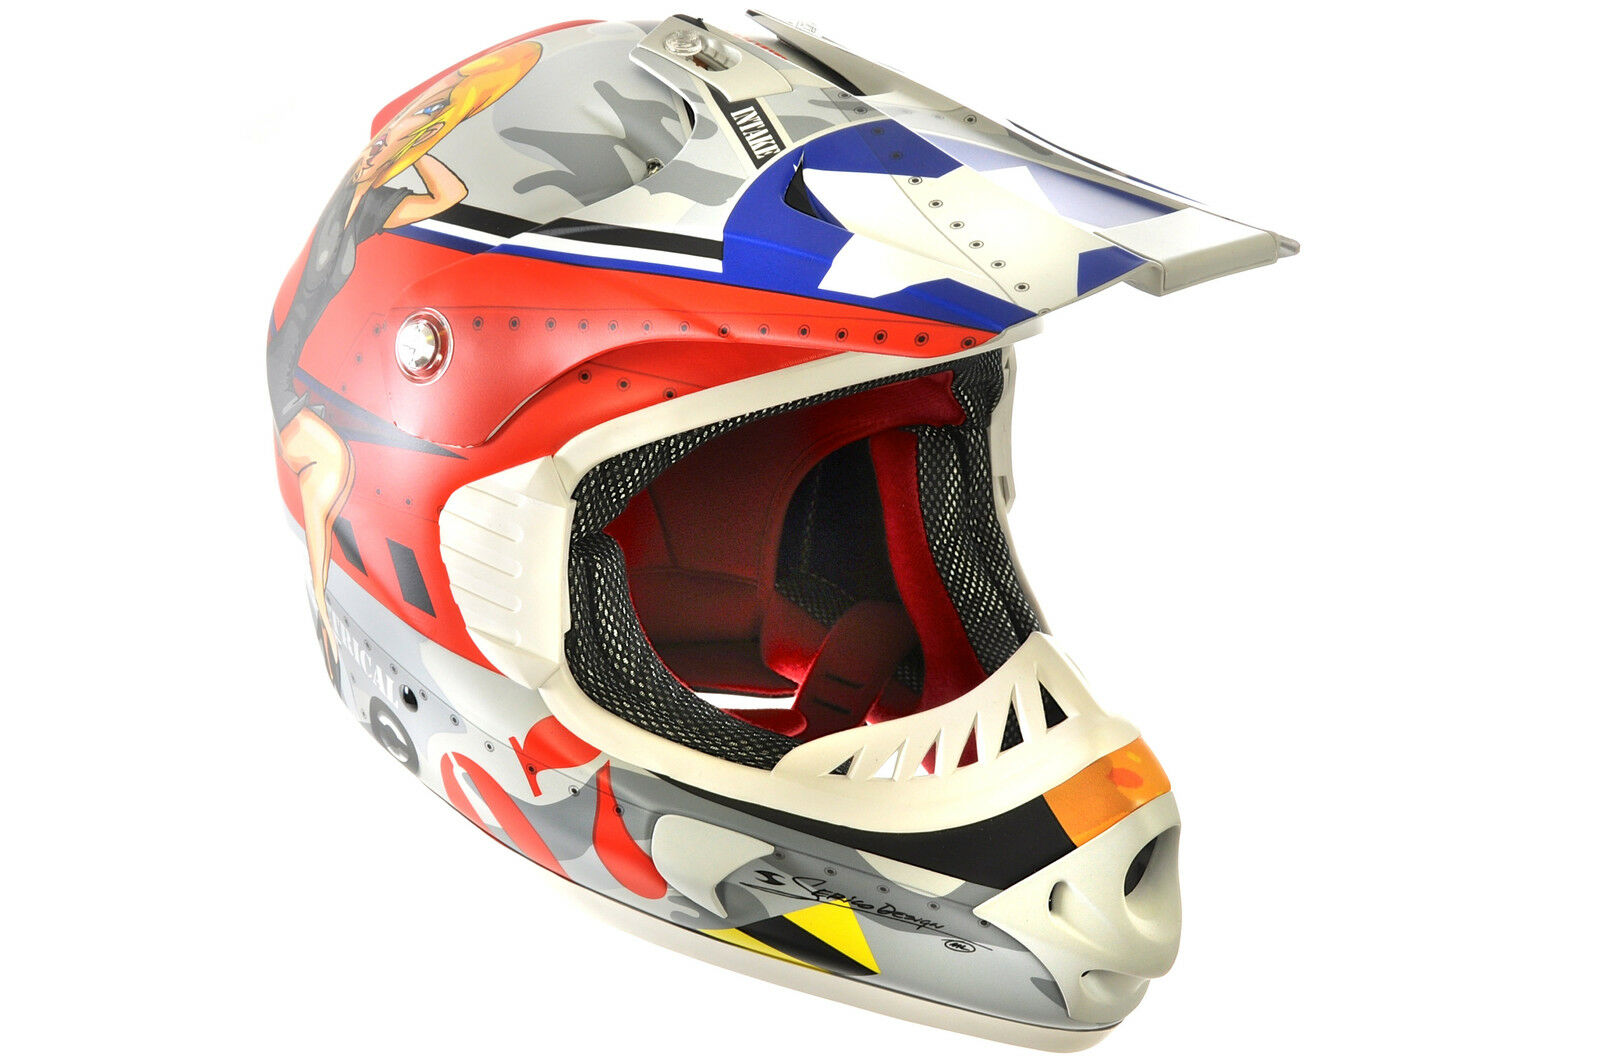 FULL FACE FIBREGLASS BIKE BICYCLE  HELMET B.E. HOTTER LARGE 59-60cm MULTI COL  hot limited edition